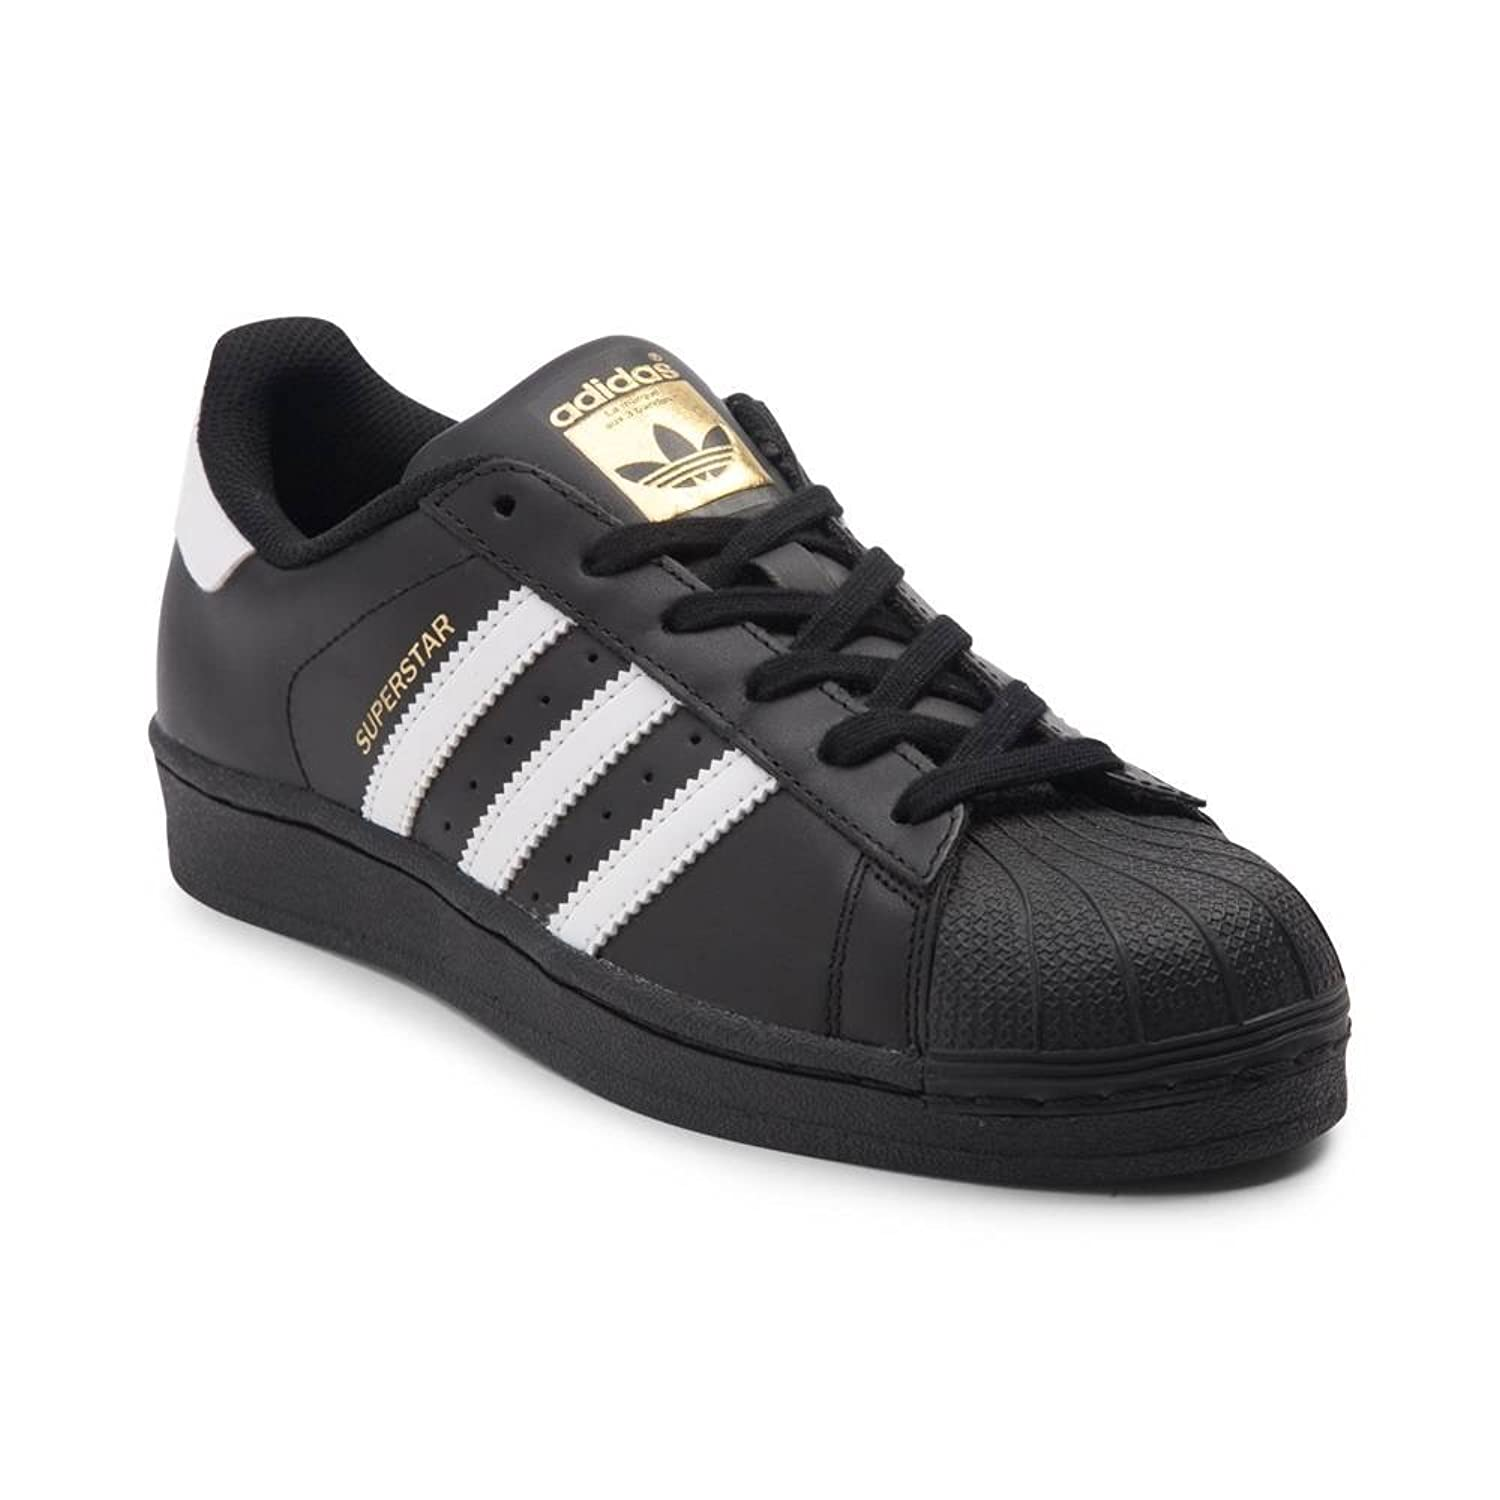 adidas Originals Women's Superstar W Fashion Sneaker (Womens 8, Black/White/GoldLabel)